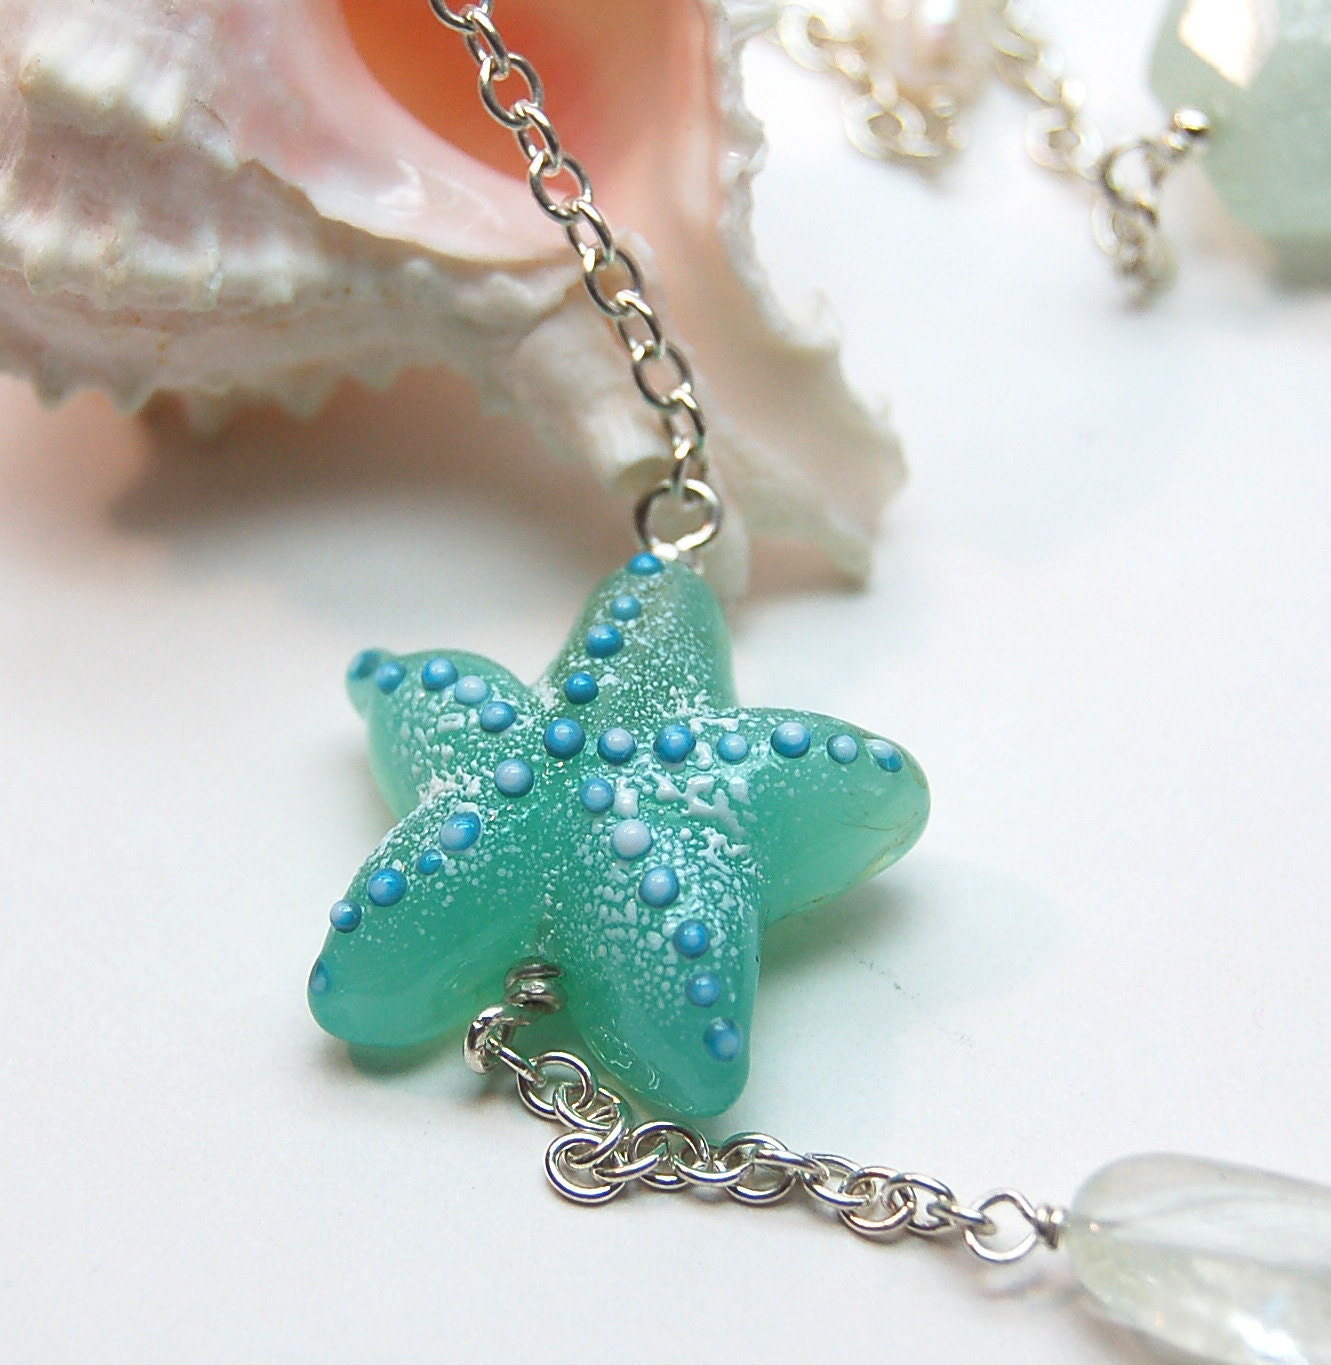 Aqua Teal Shoreline Lampwork Bead Long Necklace - aStudiobytheSea